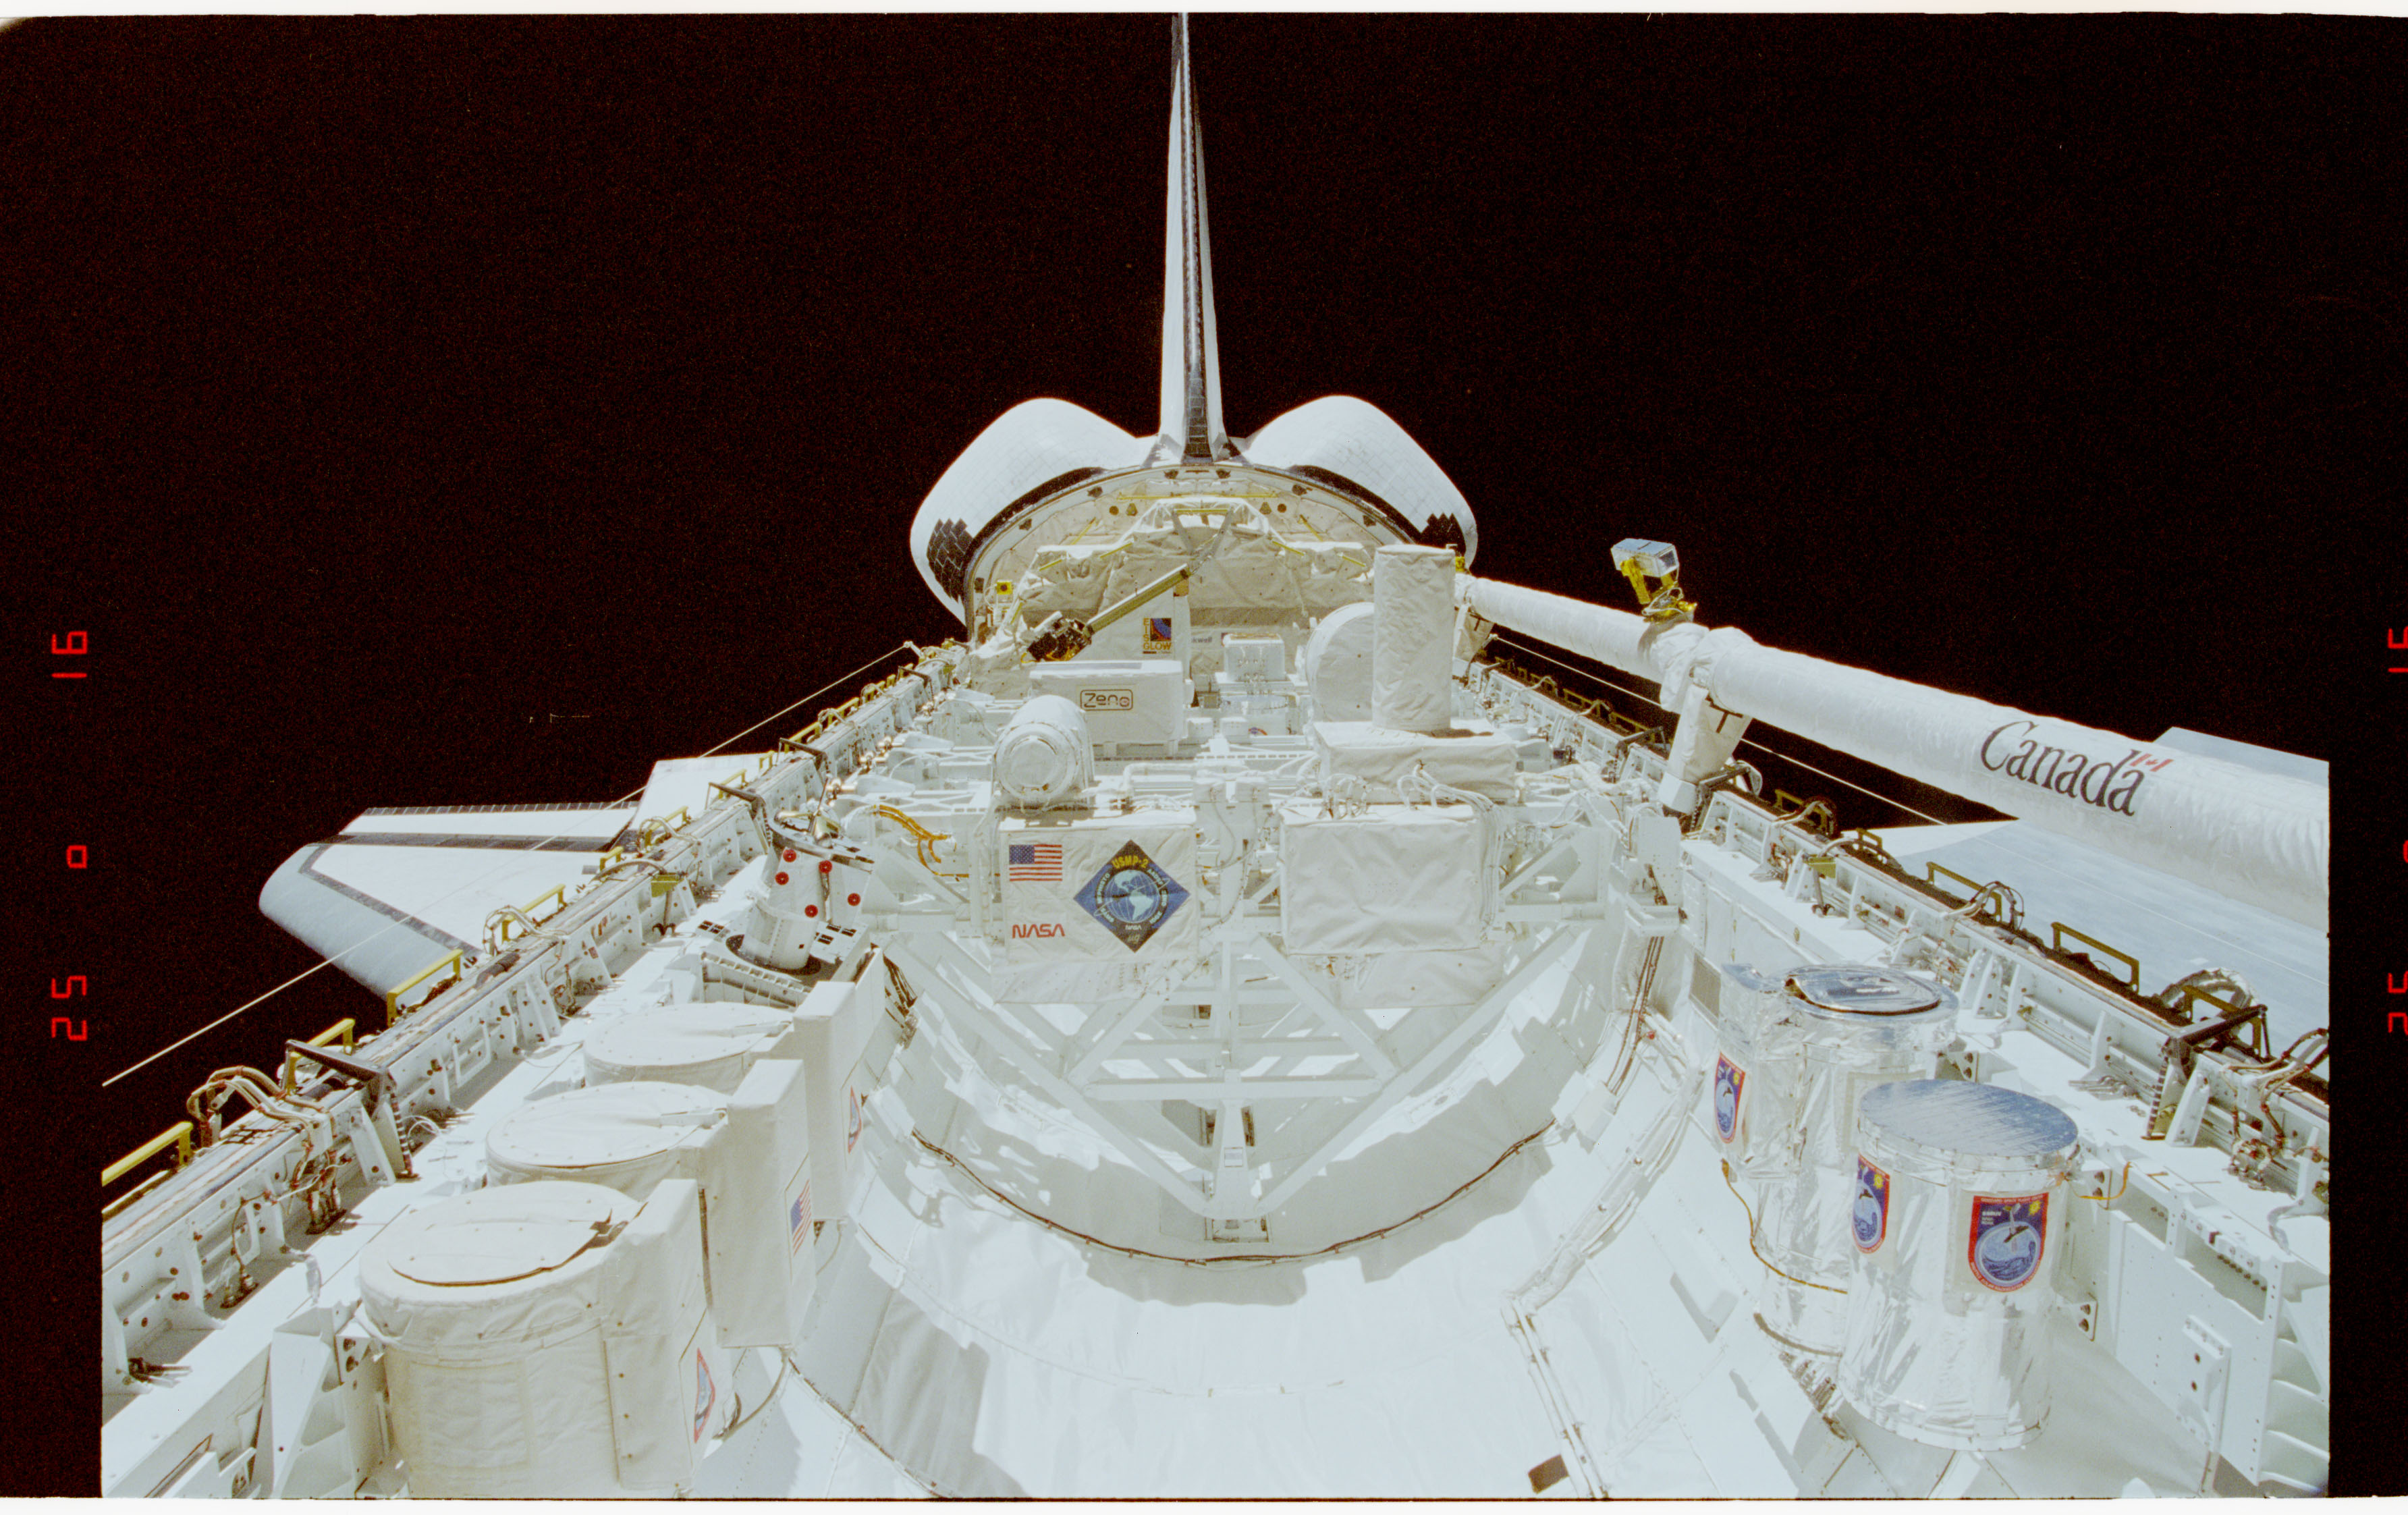 STS062-14-019 - STS-062 - Columbia's payload bay